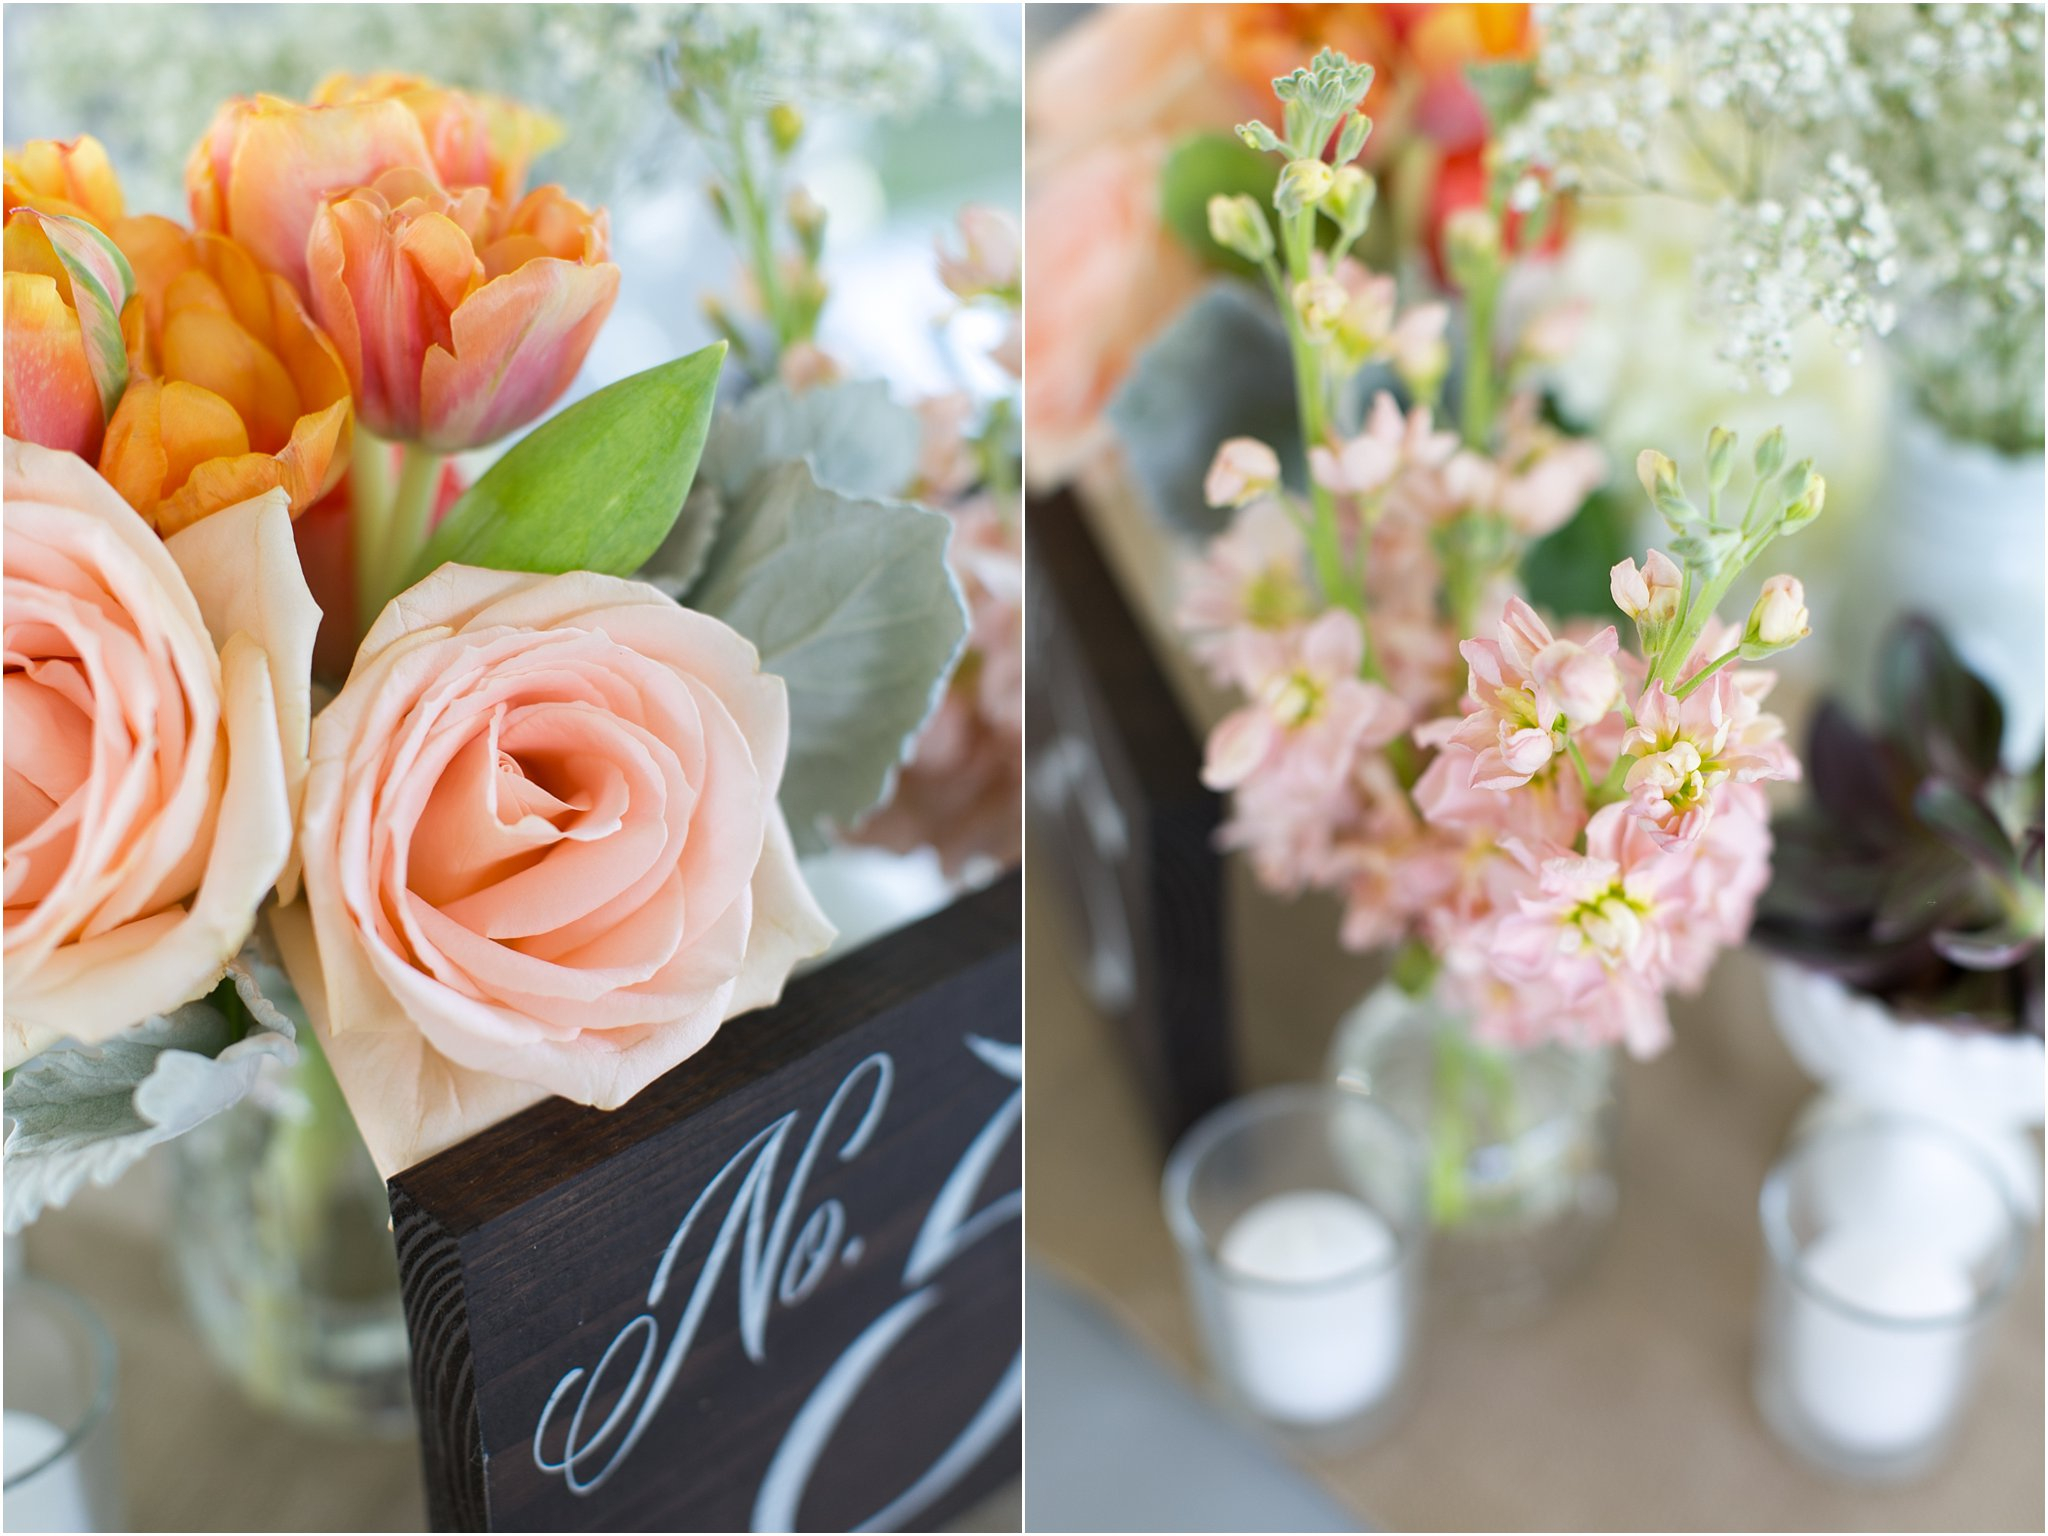 jessica_ryan_photography_holly_ridge_manor_wedding_roost_flowers_jamie_leigh_events_dhalia_edwards_candid_vibrant_wedding_colors_1347